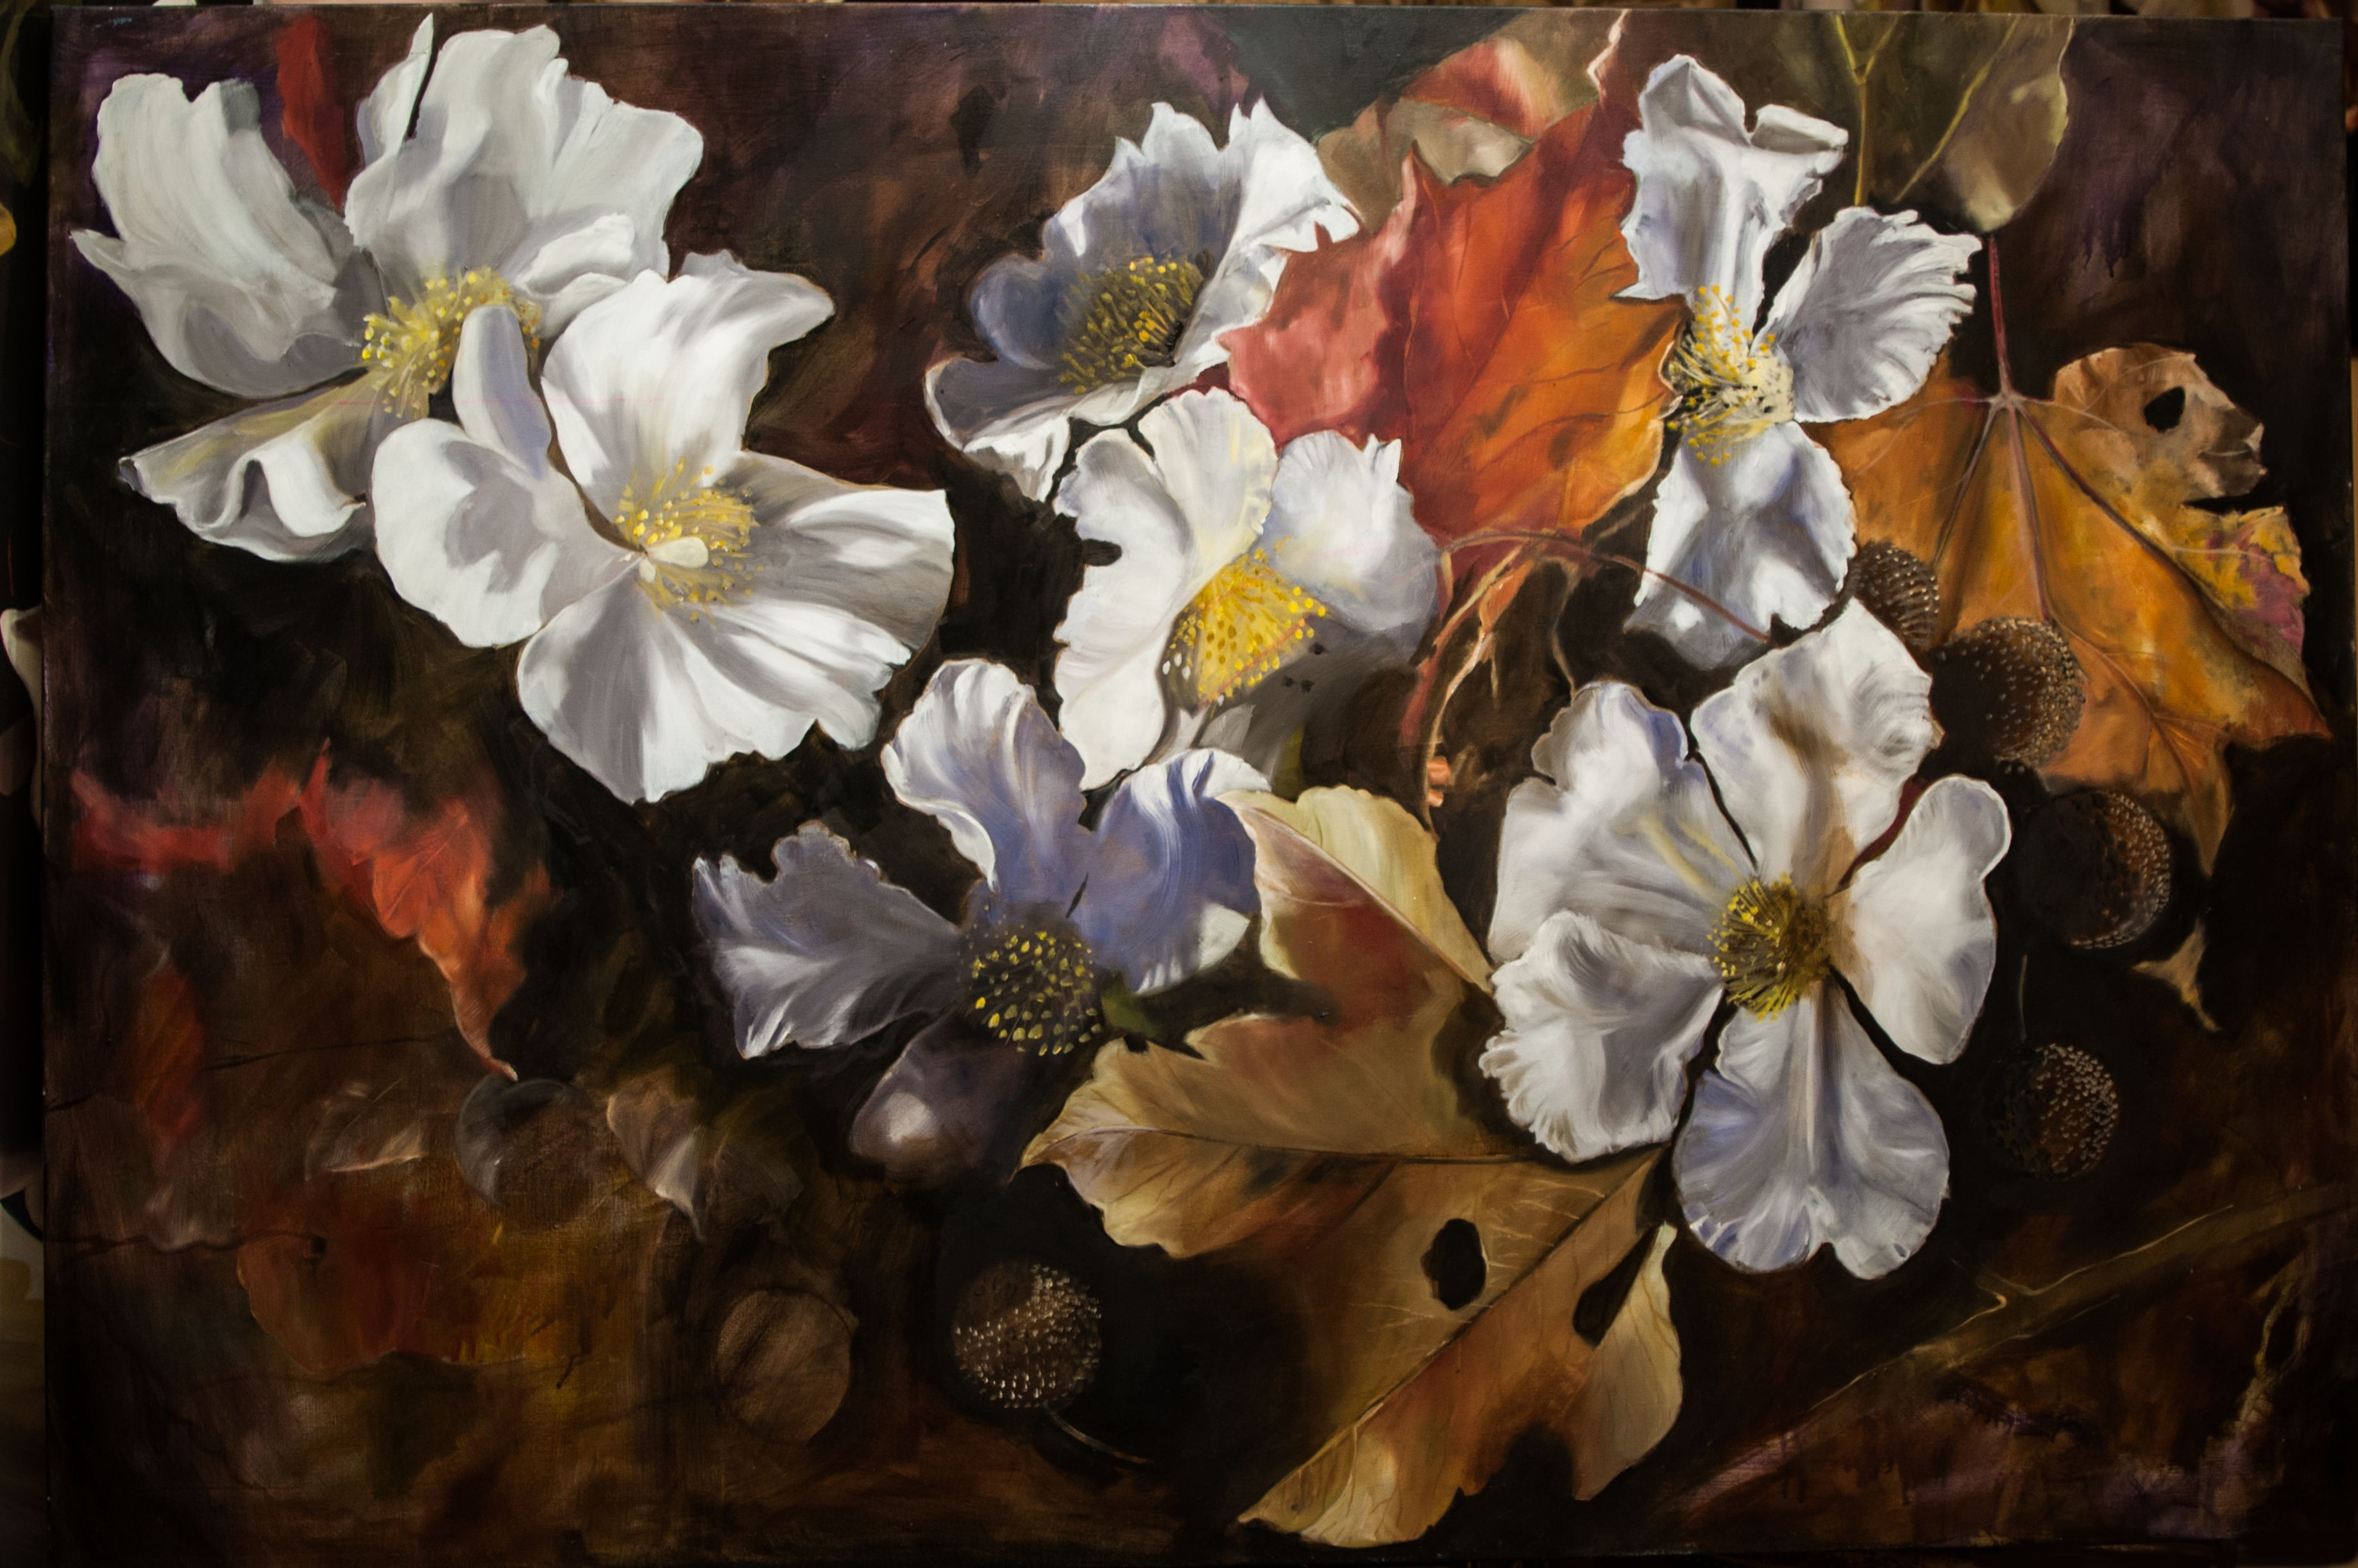 Pin By Diana Watson On Christmas: BORGHESE 122x182 Diana Watson Painting Oil On Linen